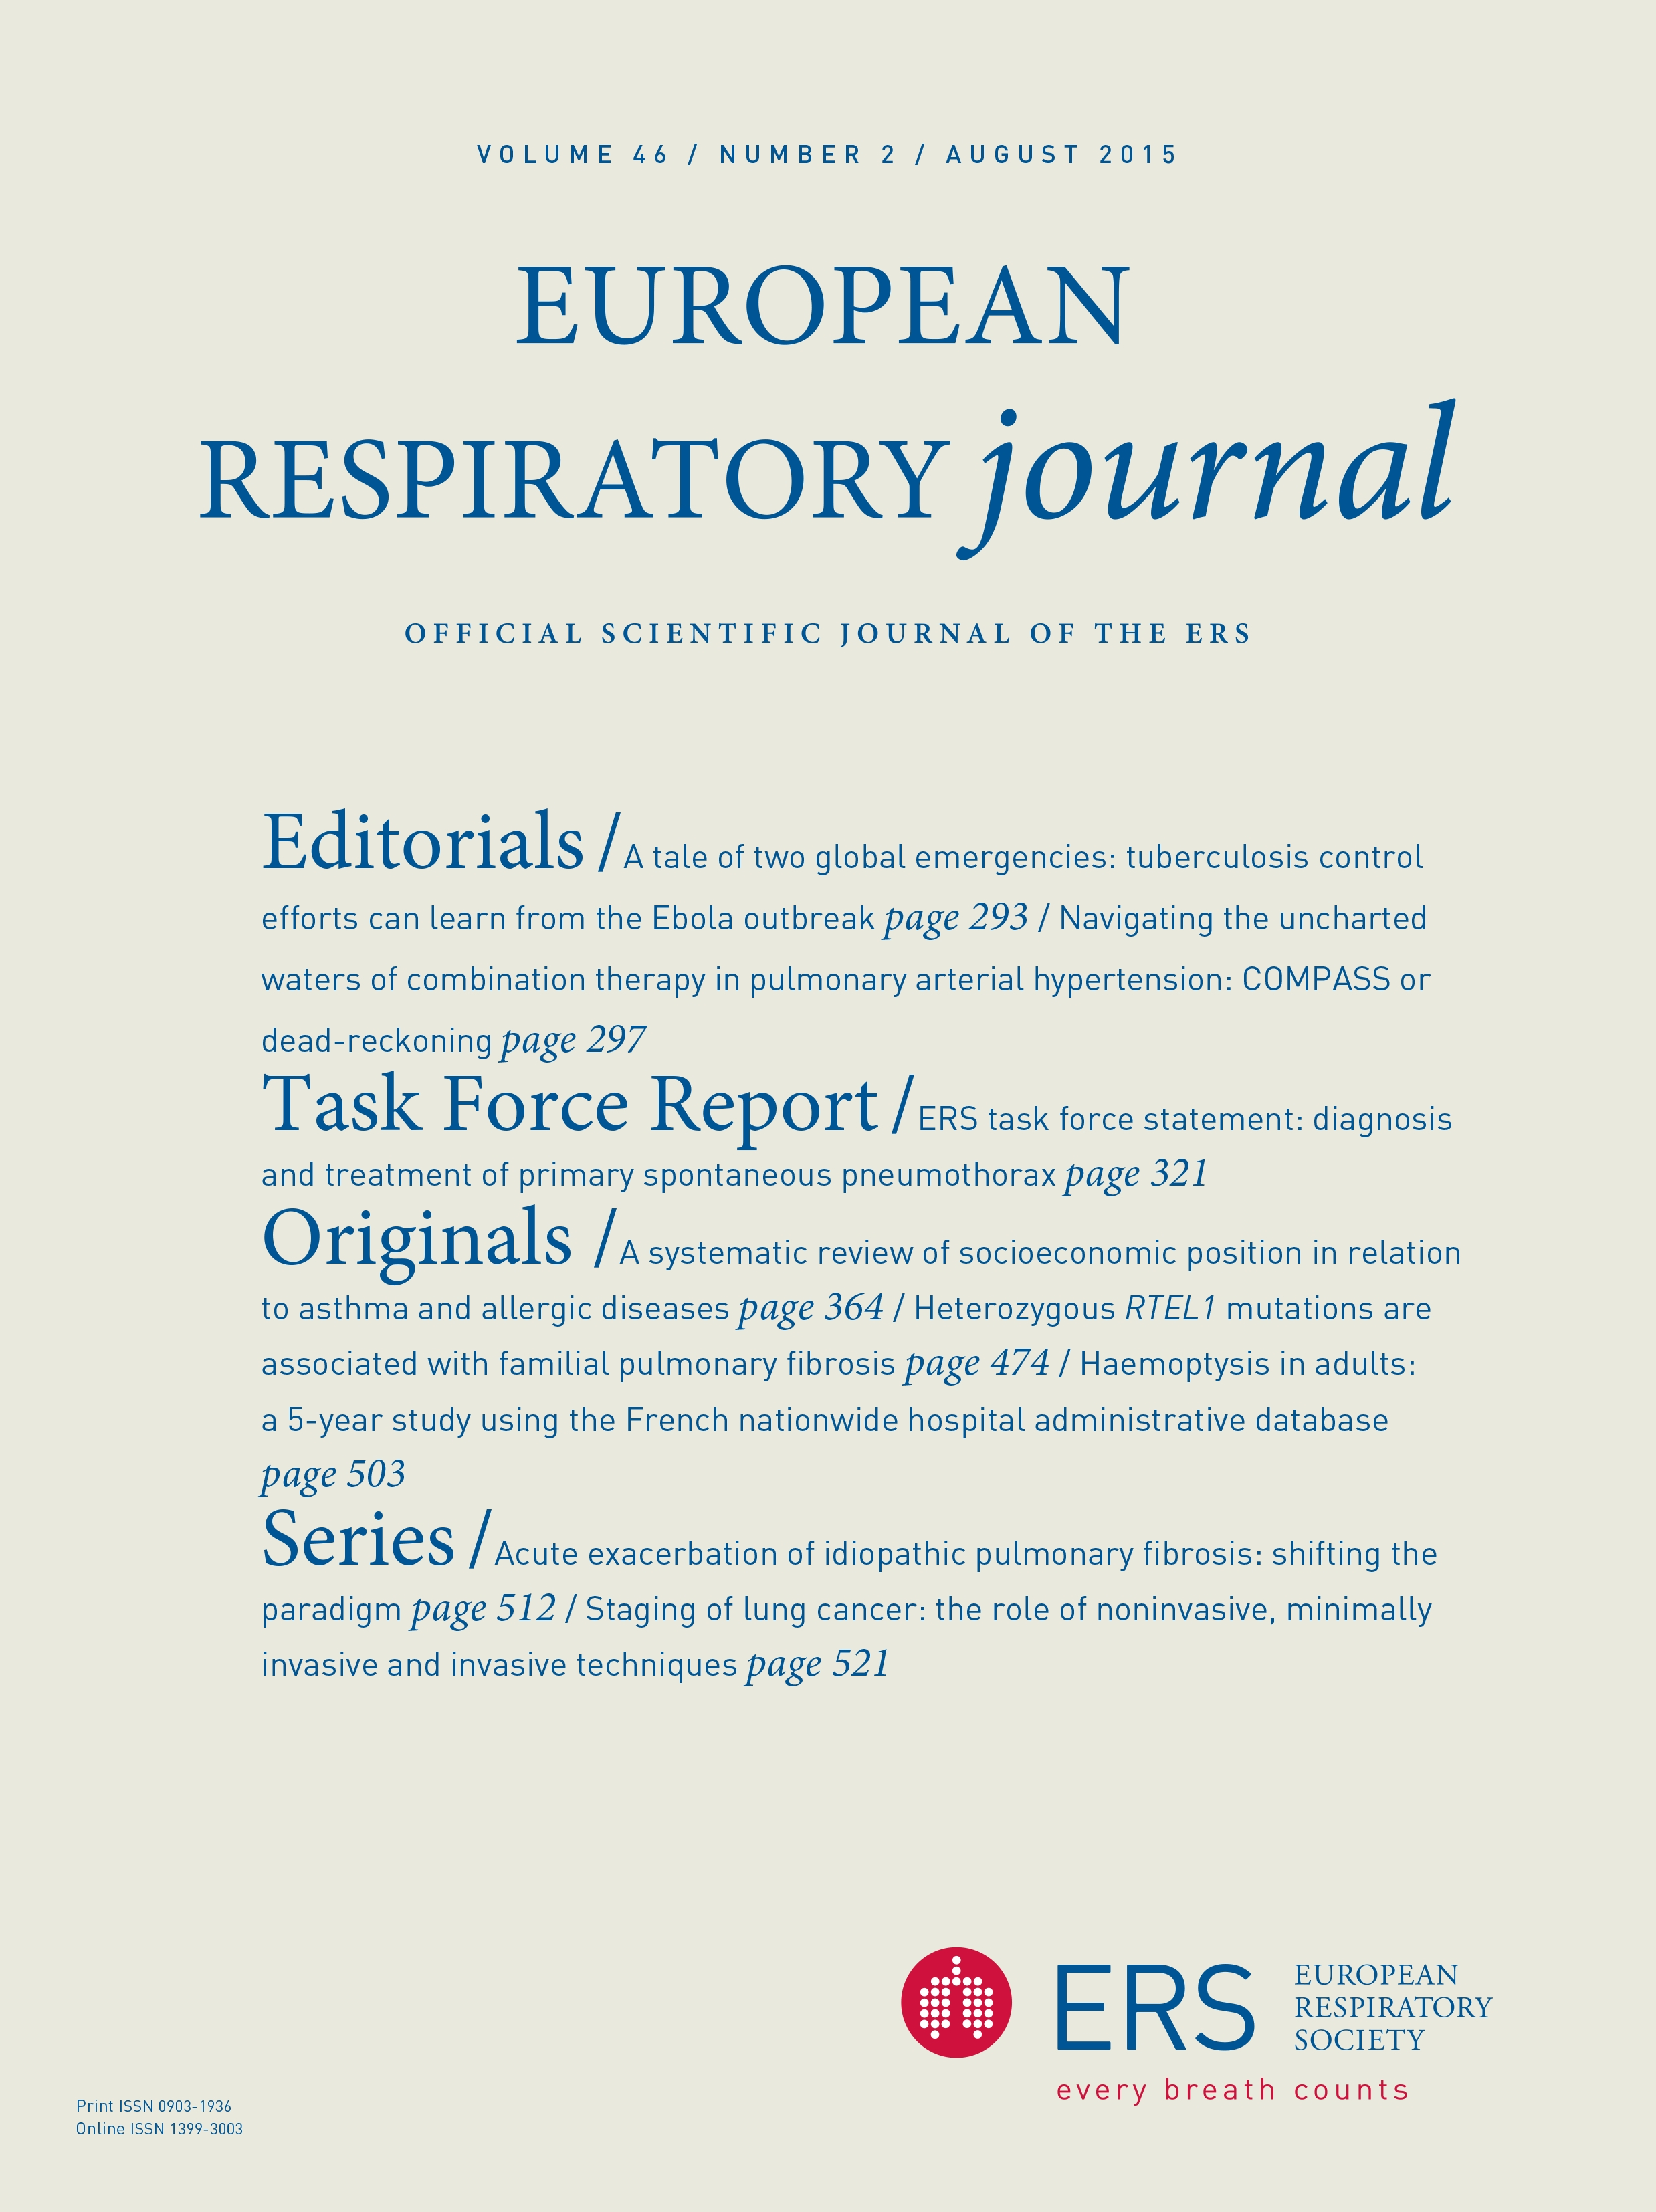 Staging of lung cancer: the role of noninvasive, minimally invasive and  invasive techniques | European Respiratory Society